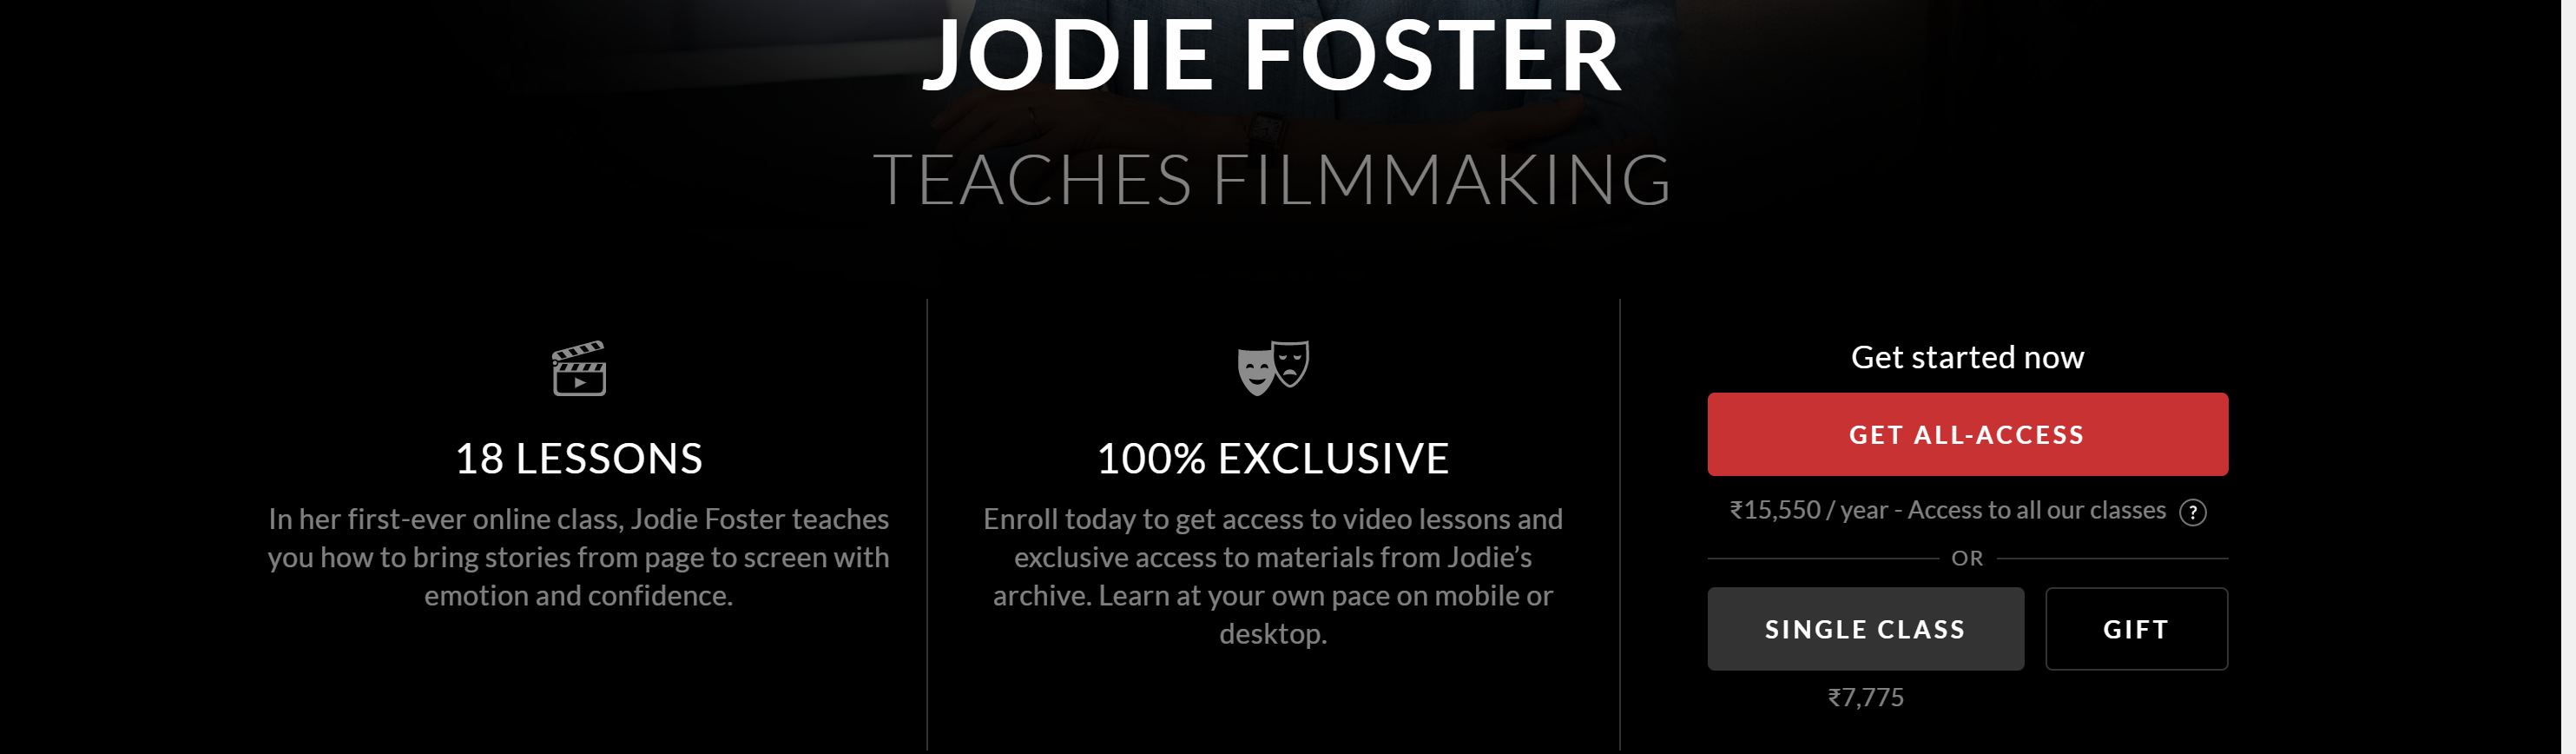 Jodie Foster MasterClass pricing review